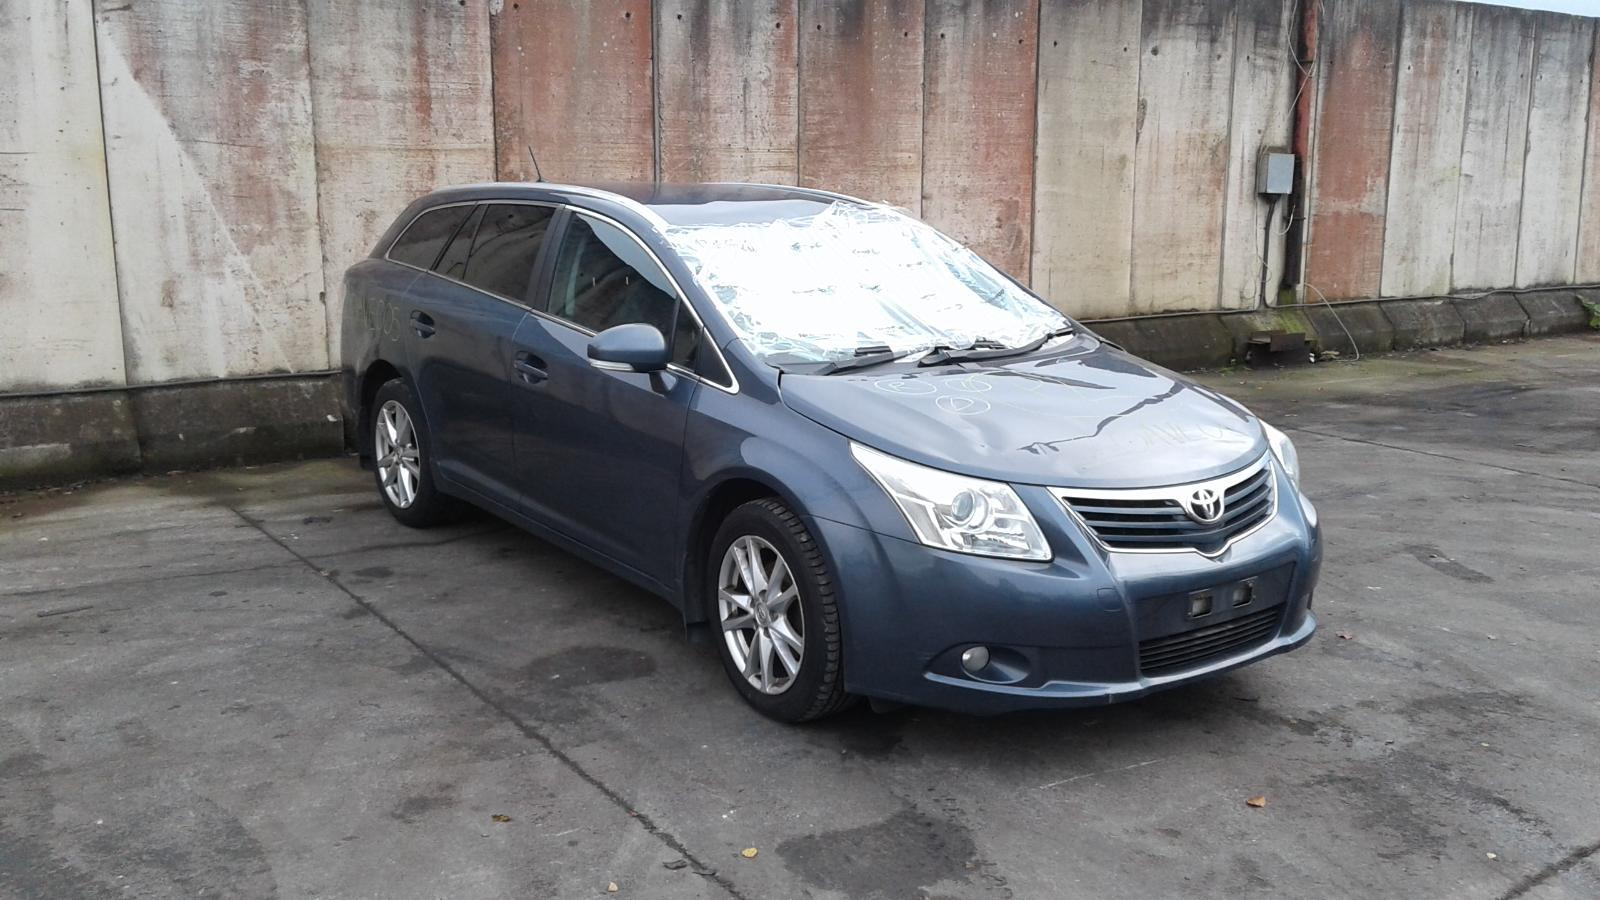 2010 TOYOTA AVENSIS BREAKING FOR PARTS Image